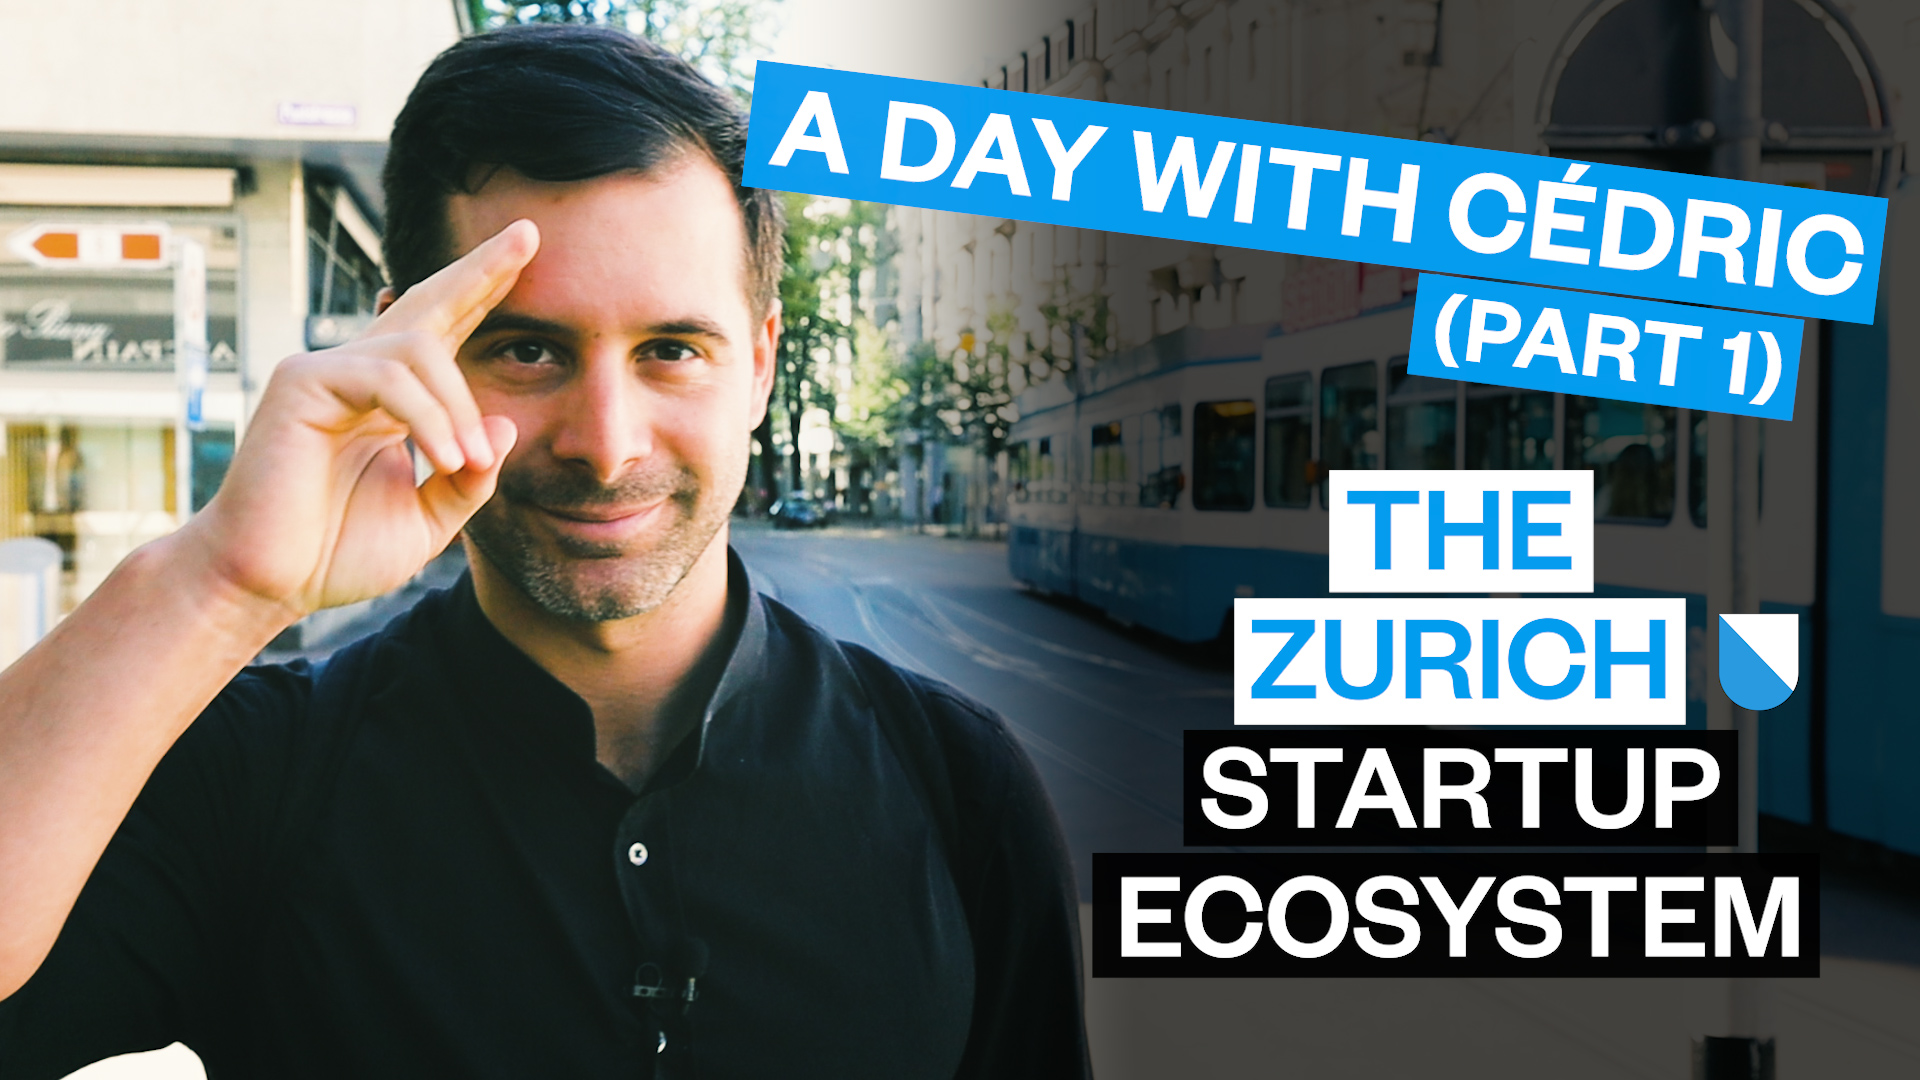 A Day With Cédric (Part 1) - The Zurich Startup Ecosystem